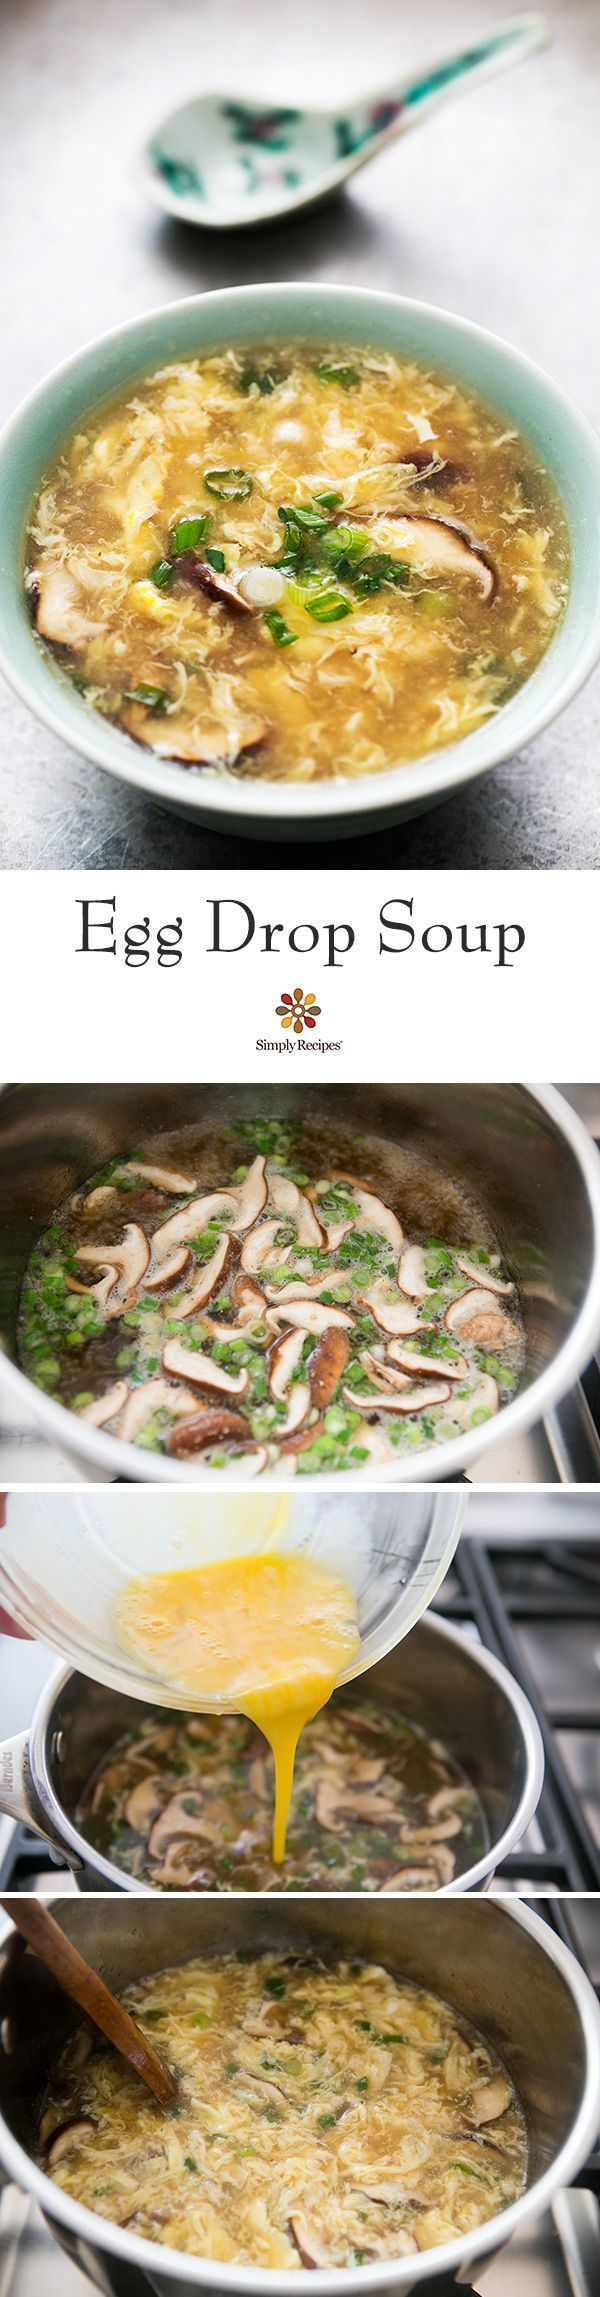 It may not sound nice but it's really delish & good hearty broth (Cantonese Poached Chicken with Ginger Scallion Oil Sauce. Via SimplyRecipes.com)